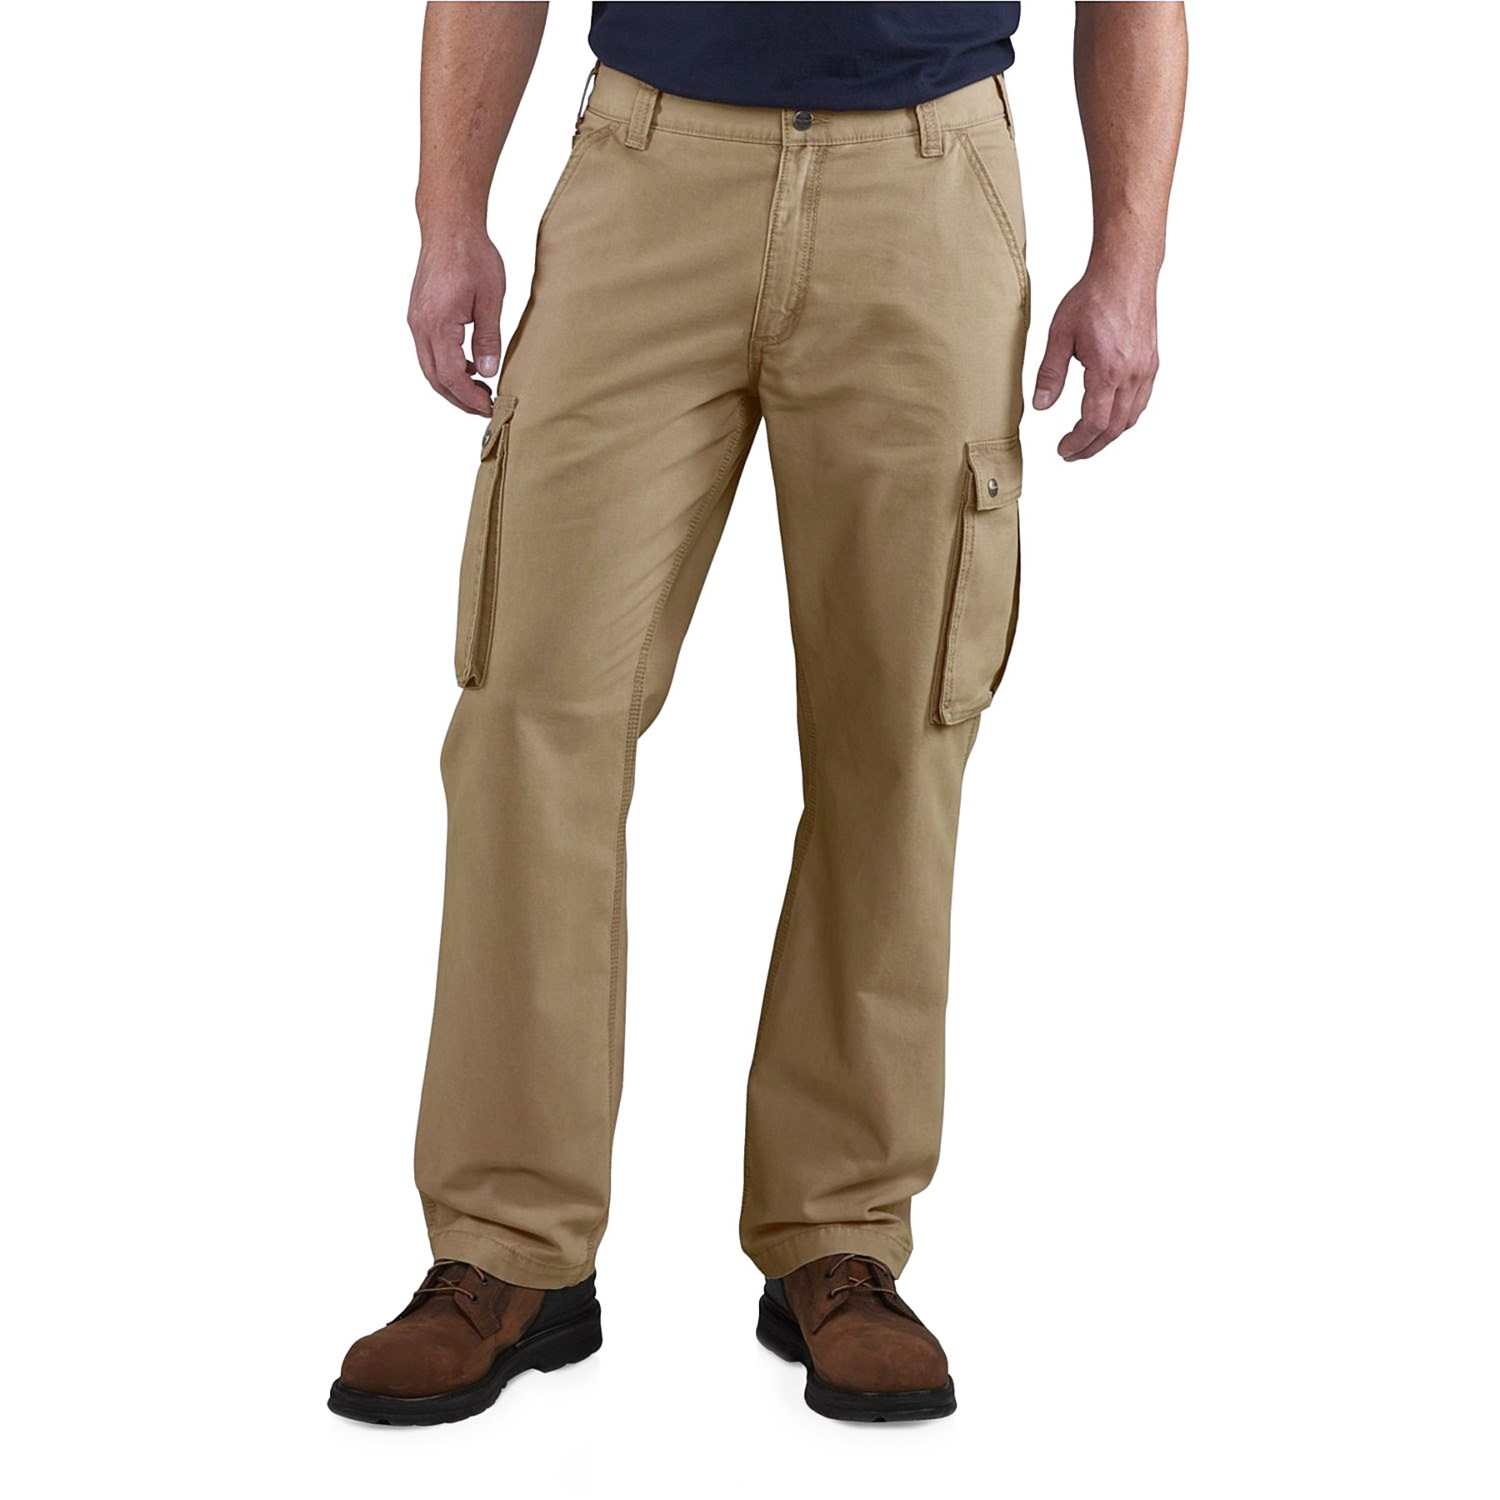 Choose stylish men's cargo pants and men's casual cargo pants from Cabela's for everything from hiking the backcountry to wearing in the office.